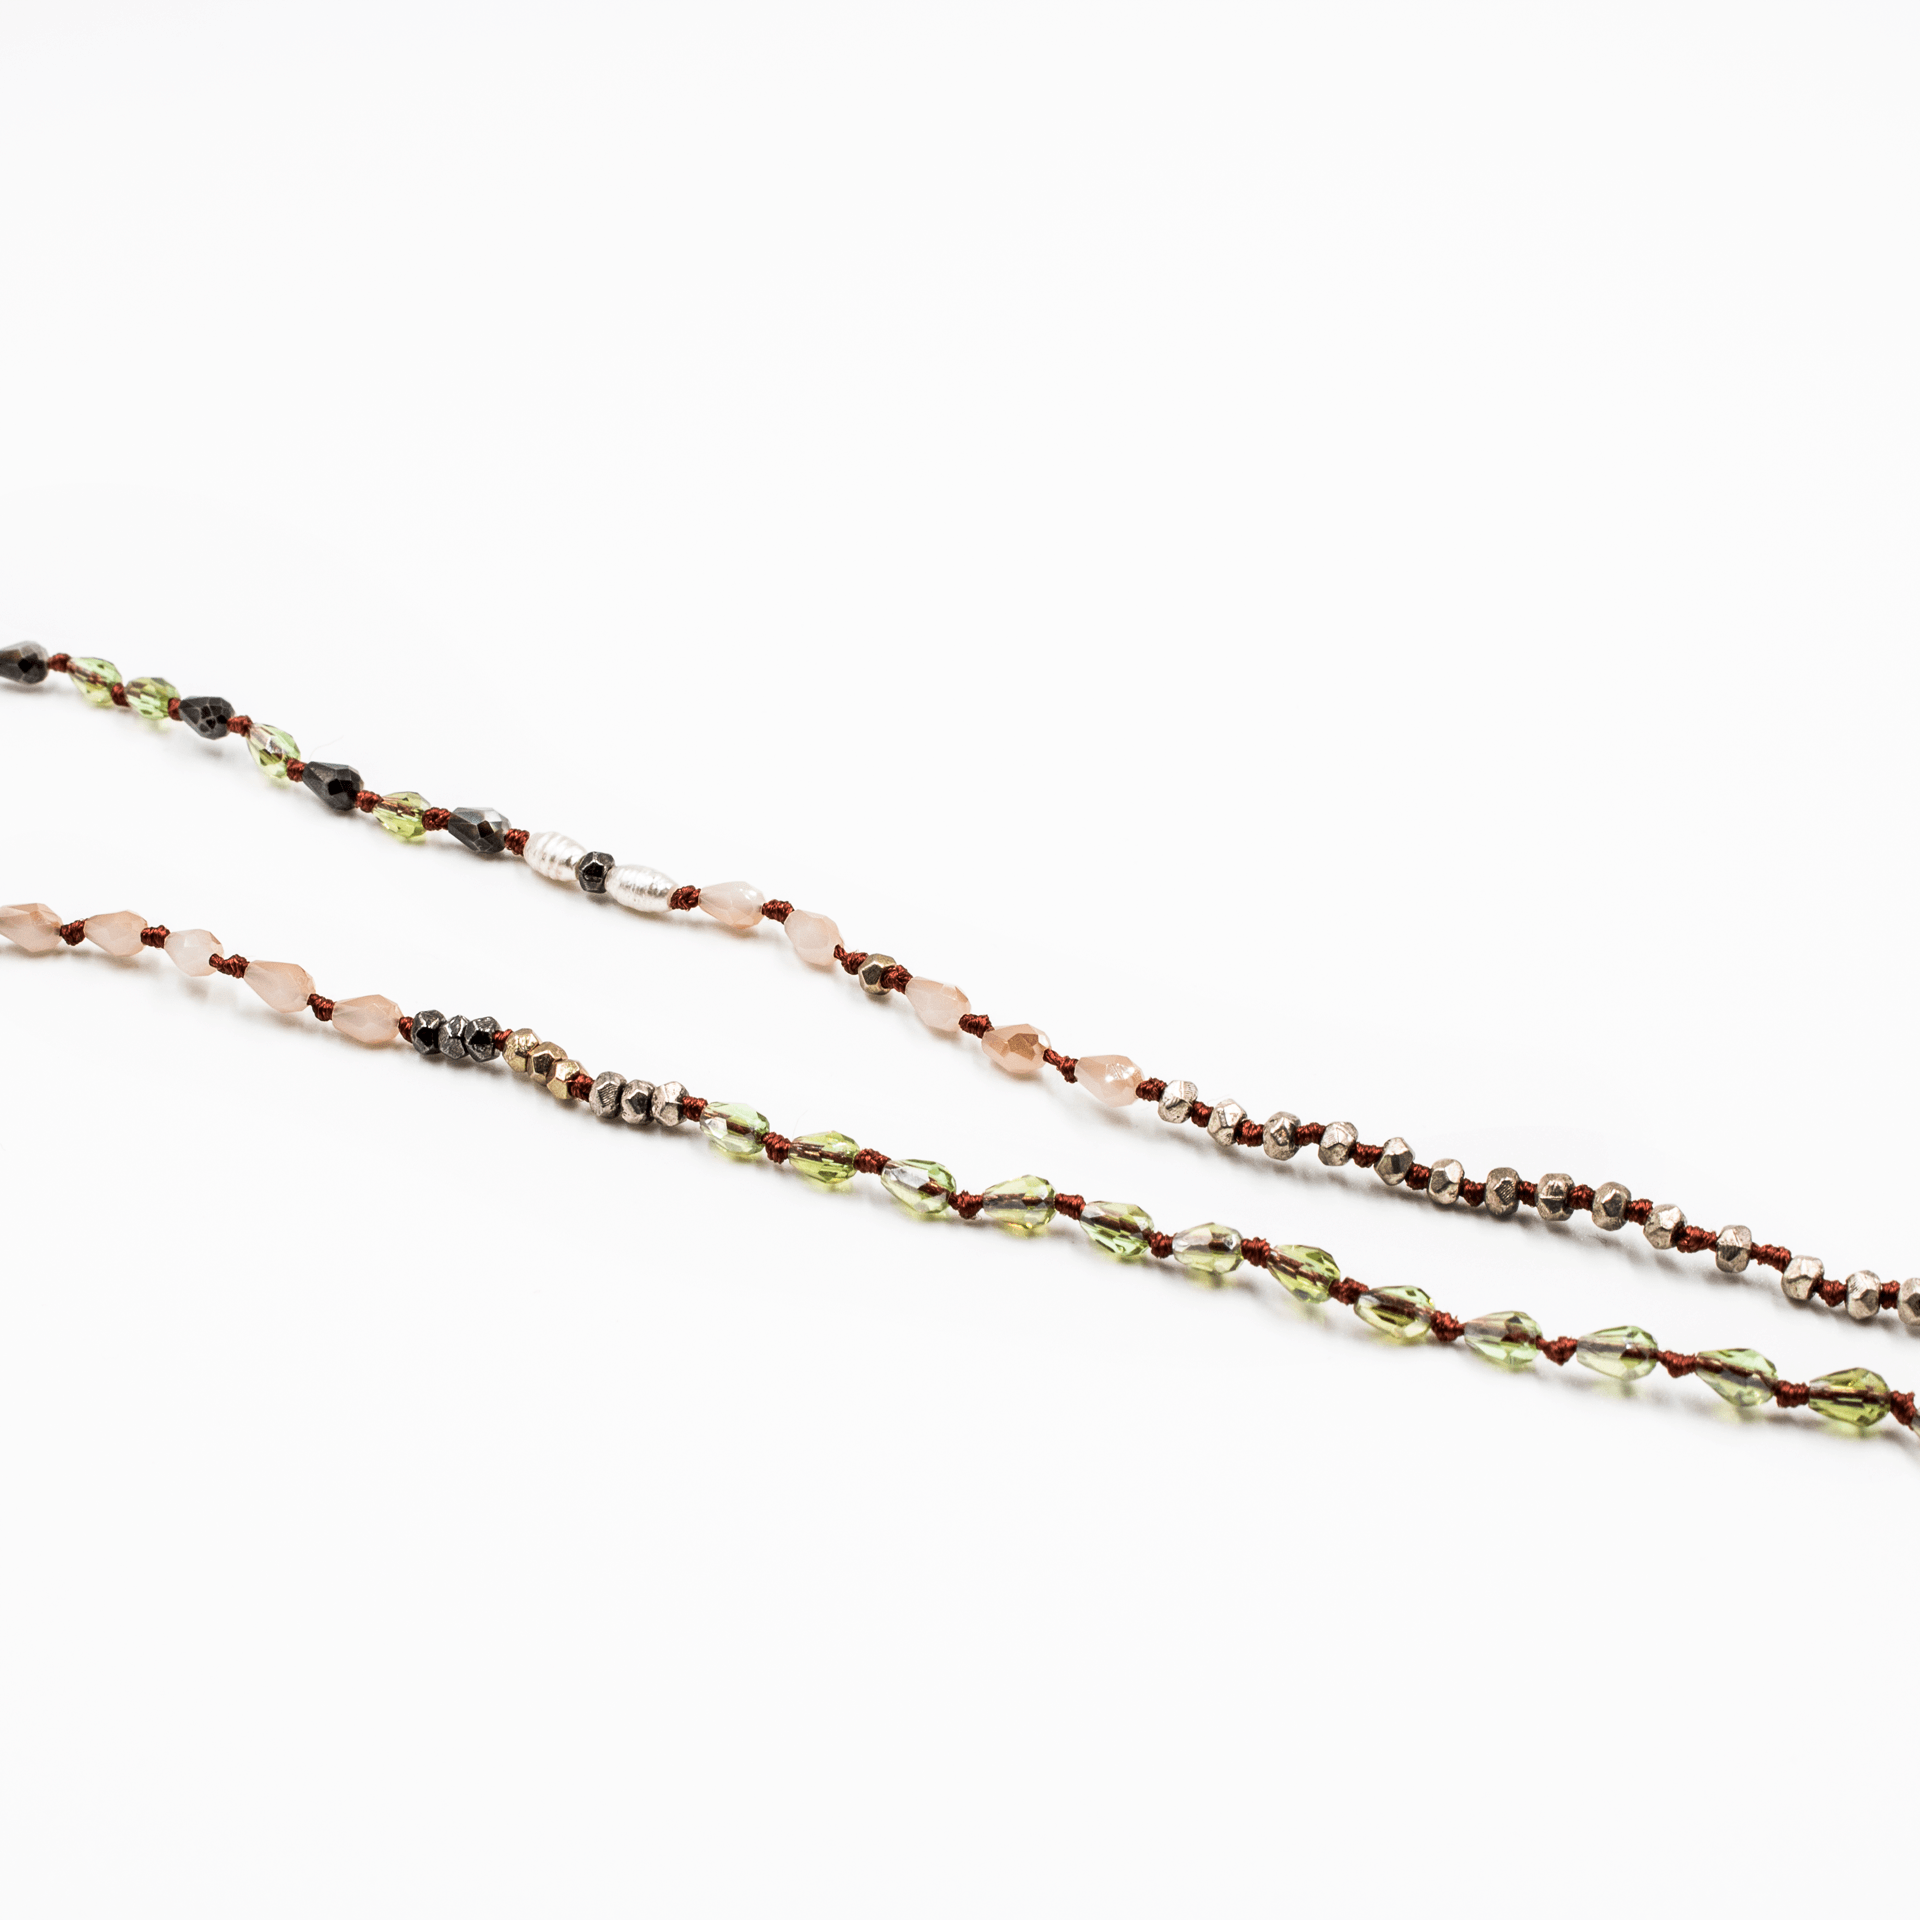 Delicate Beaded Light Burgundy Necklace With Natural White Stone - Arlo and Arrows